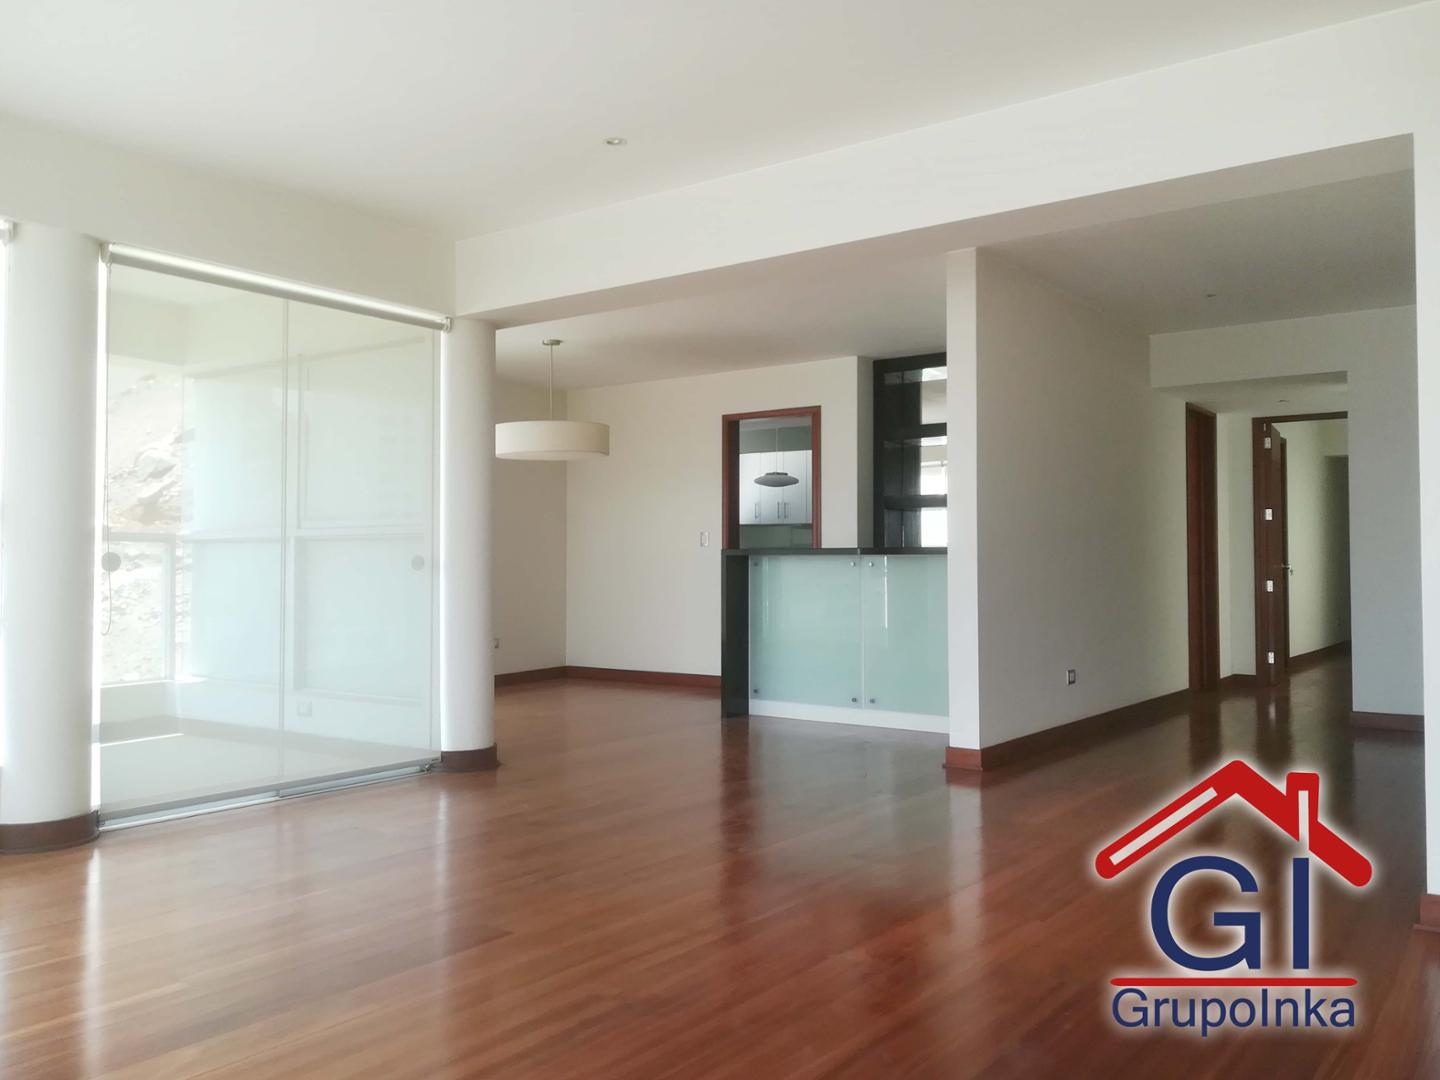 IMPECABLE DEPARTAMENTO, CON VISTA EXCLUSIVA AL CLUB ''GOLF LOS INKAS''